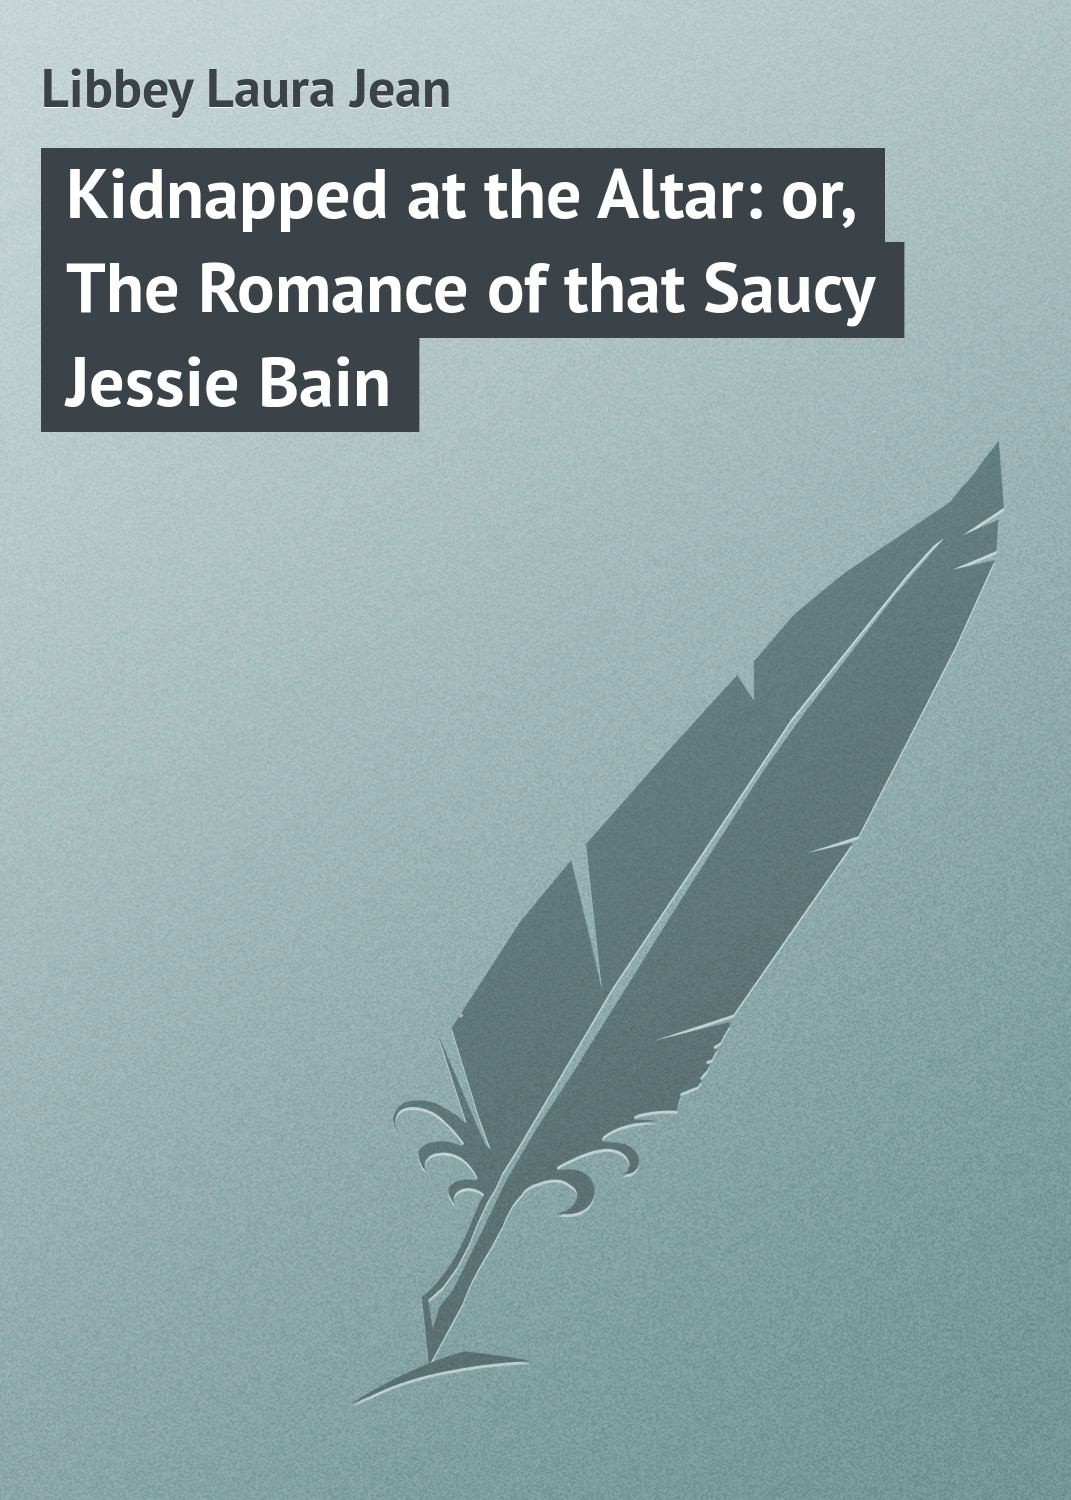 Libbey Laura Jean Kidnapped at the Altar: or, The Romance of that Saucy Jessie Bain подвесная люстра citilux аттика cl416161